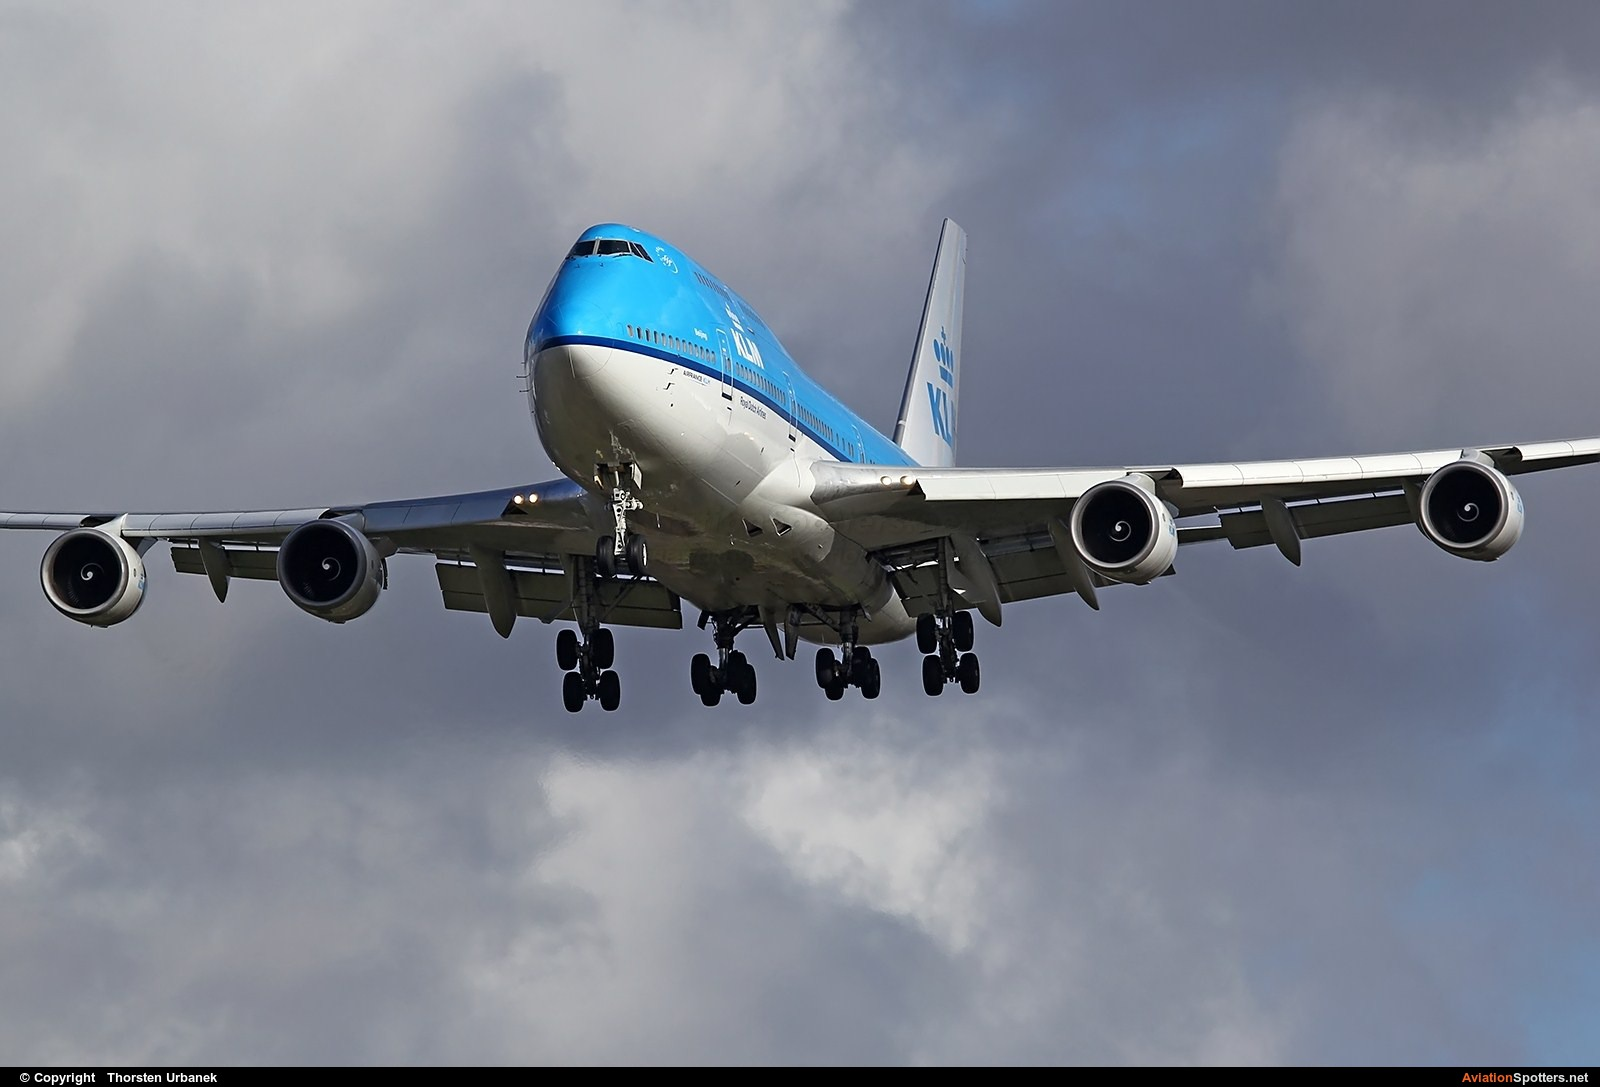 KLM  -  747-400  (PH-BFU) By Thorsten Urbanek (toto1973)